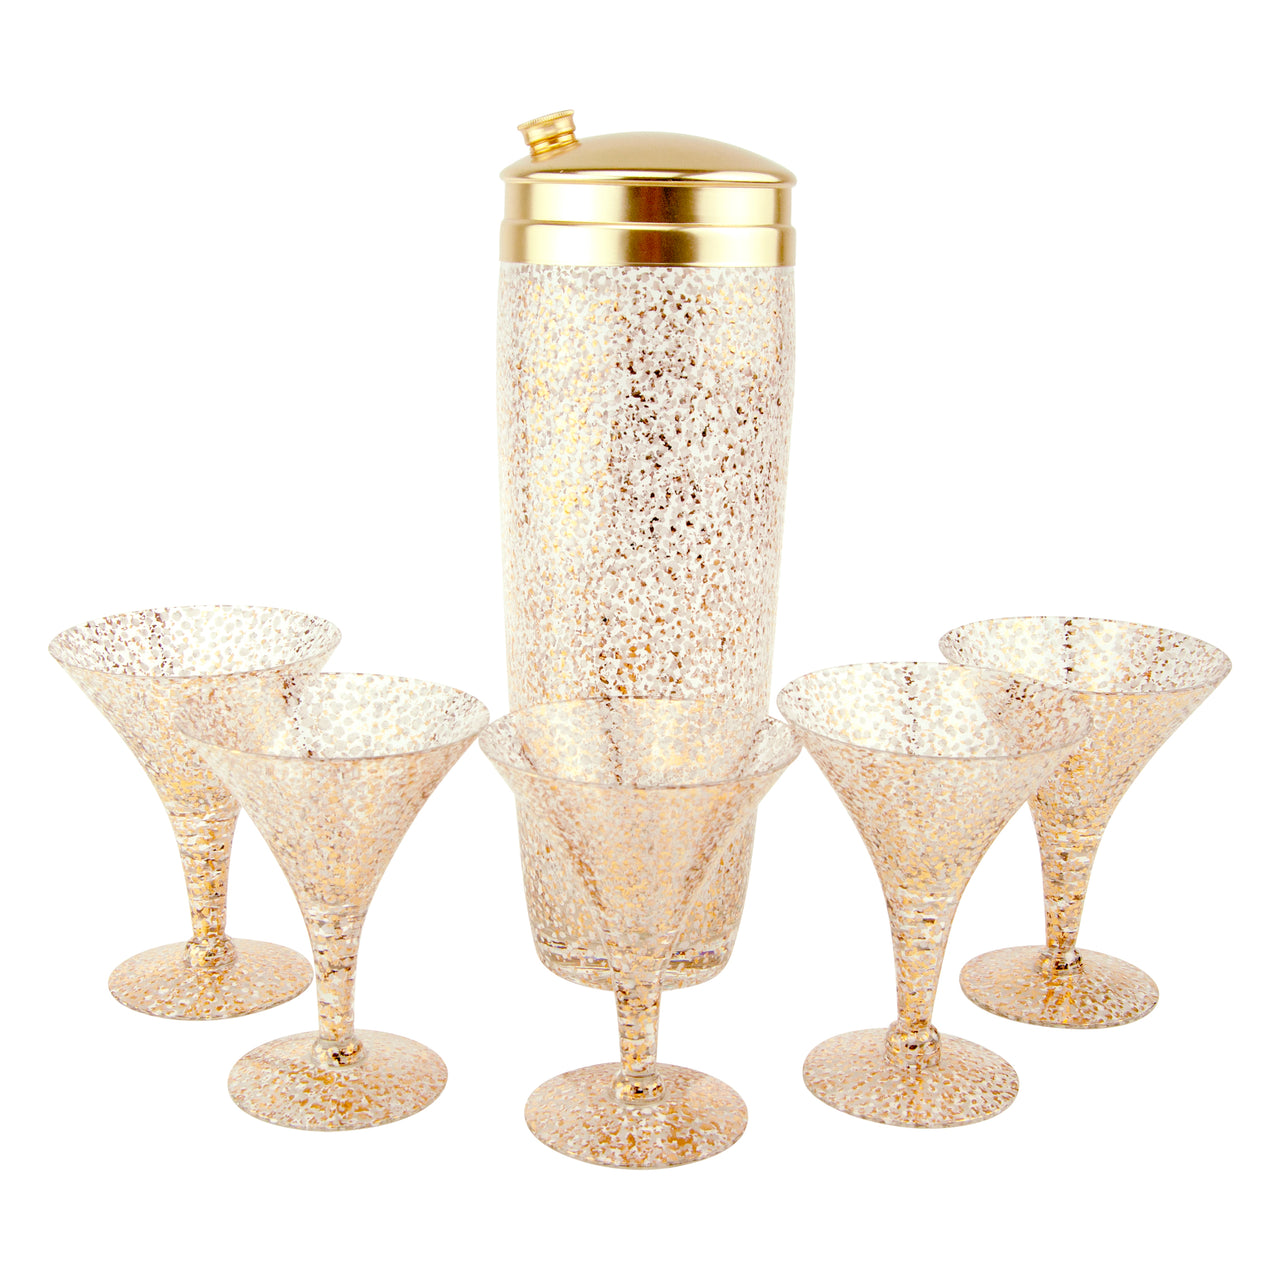 Mid Century Vintage Gold & White Splatter Cocktail Shaker Set